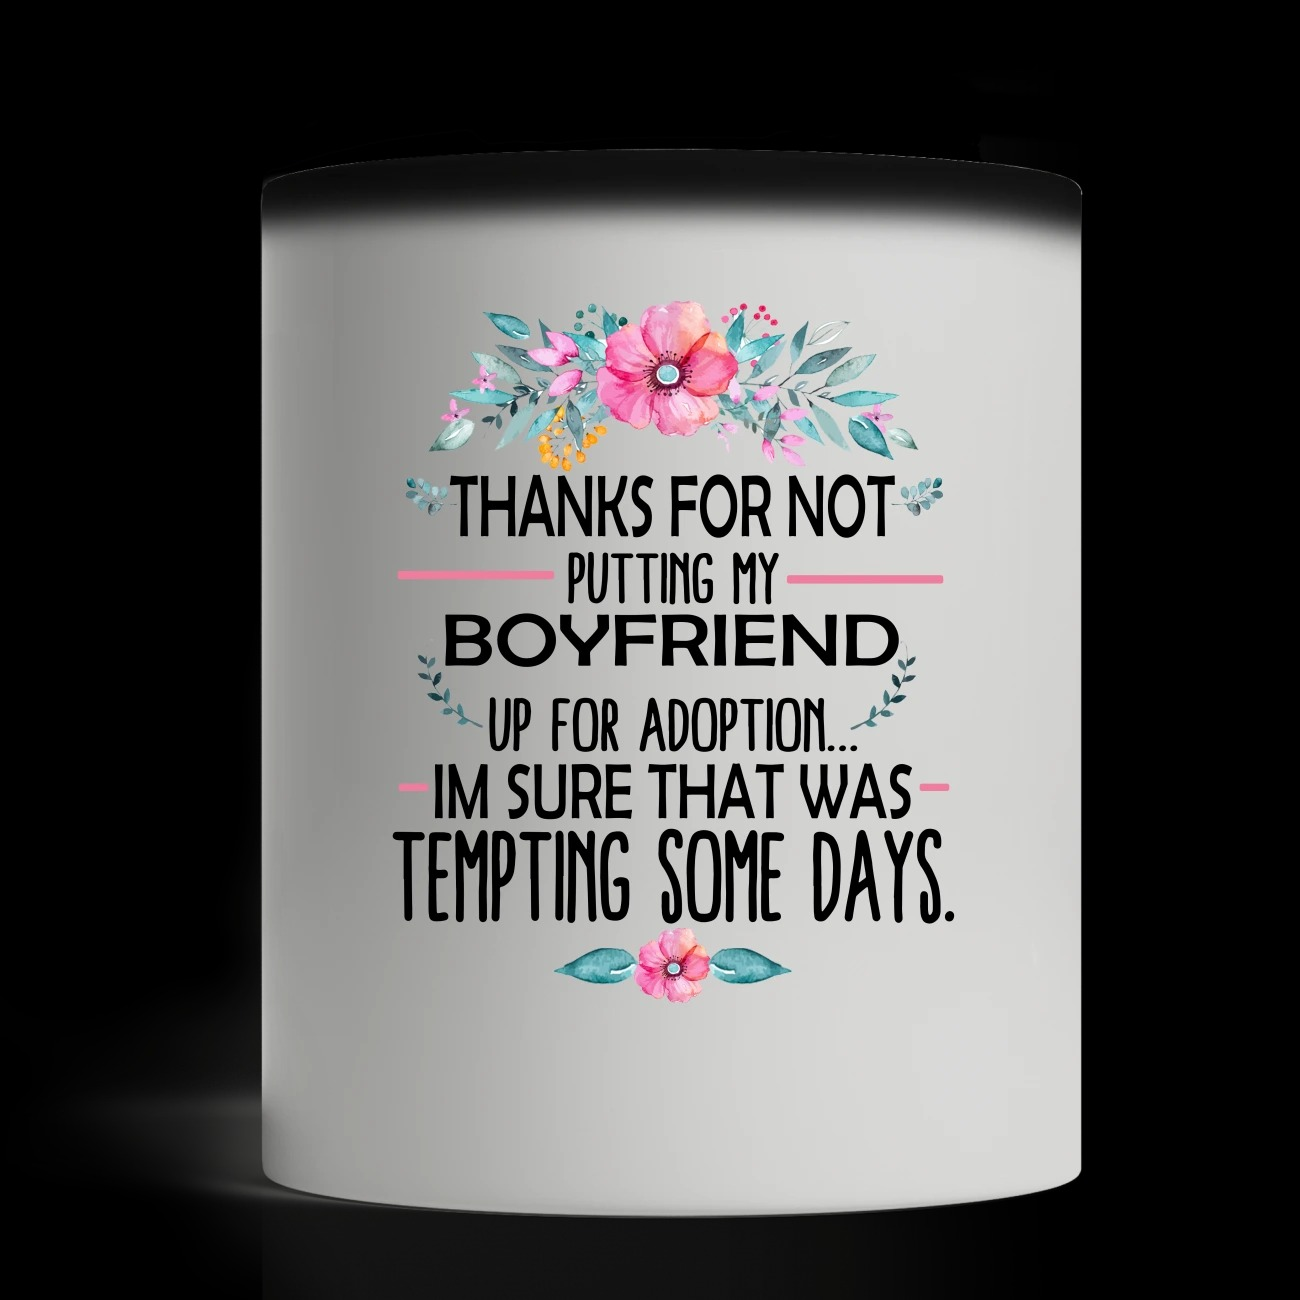 Thank for not putting my boyfriend Im sure that was temting some days magic mug